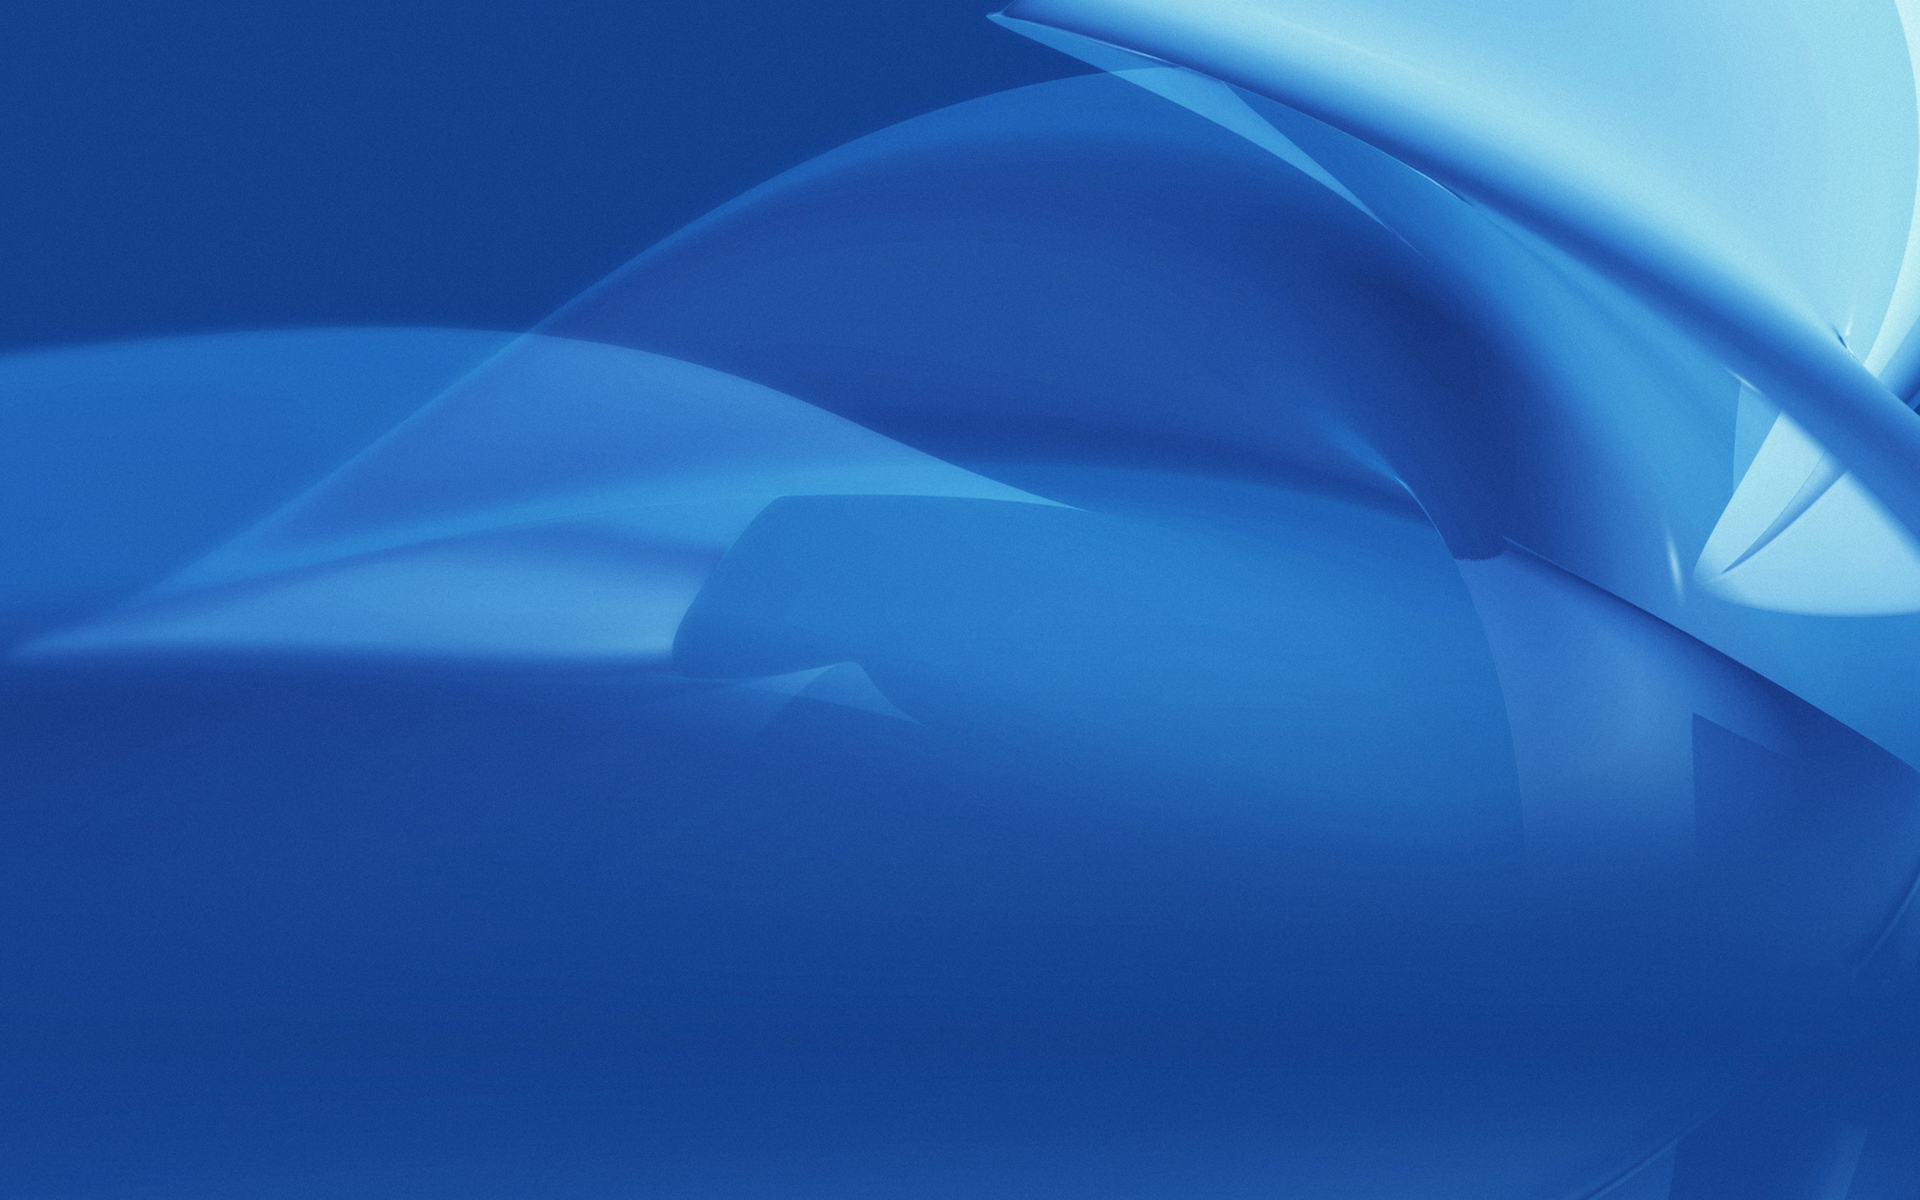 Porn site with blue background